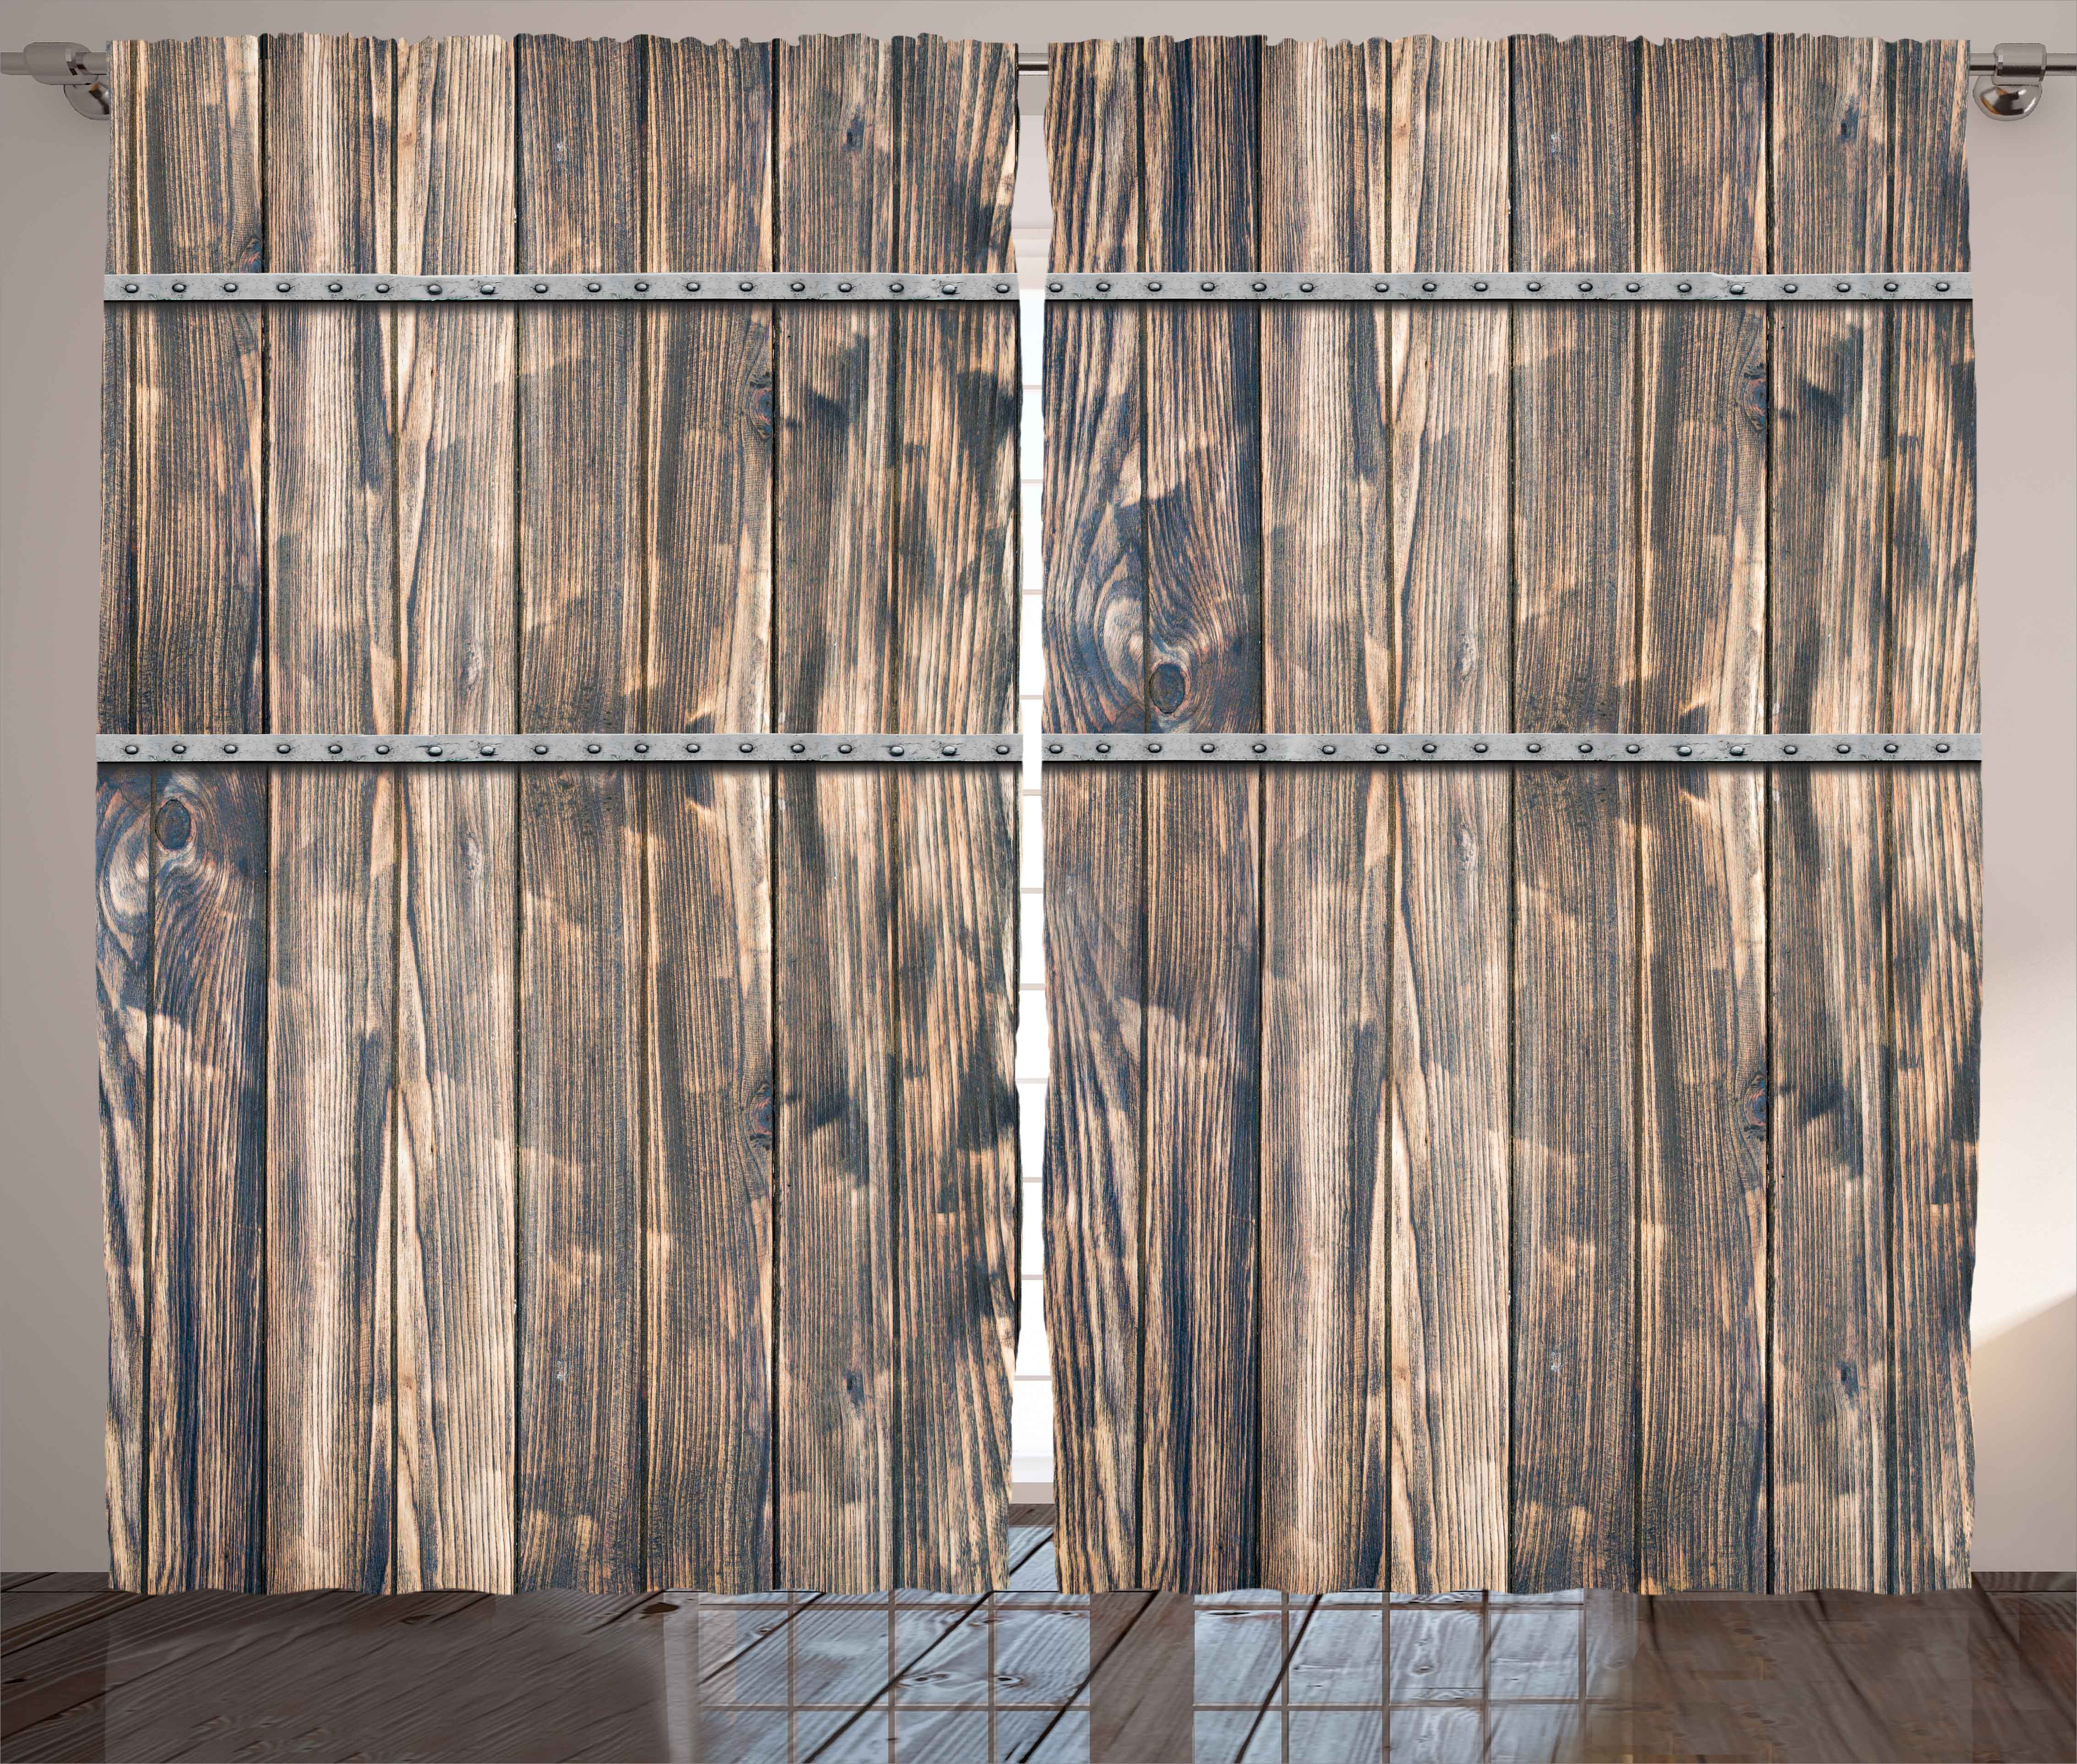 Wooden Decor Curtains 2 Panels Set, Rustic Wooden Long Farmhouse Themed  Planks With Screws And